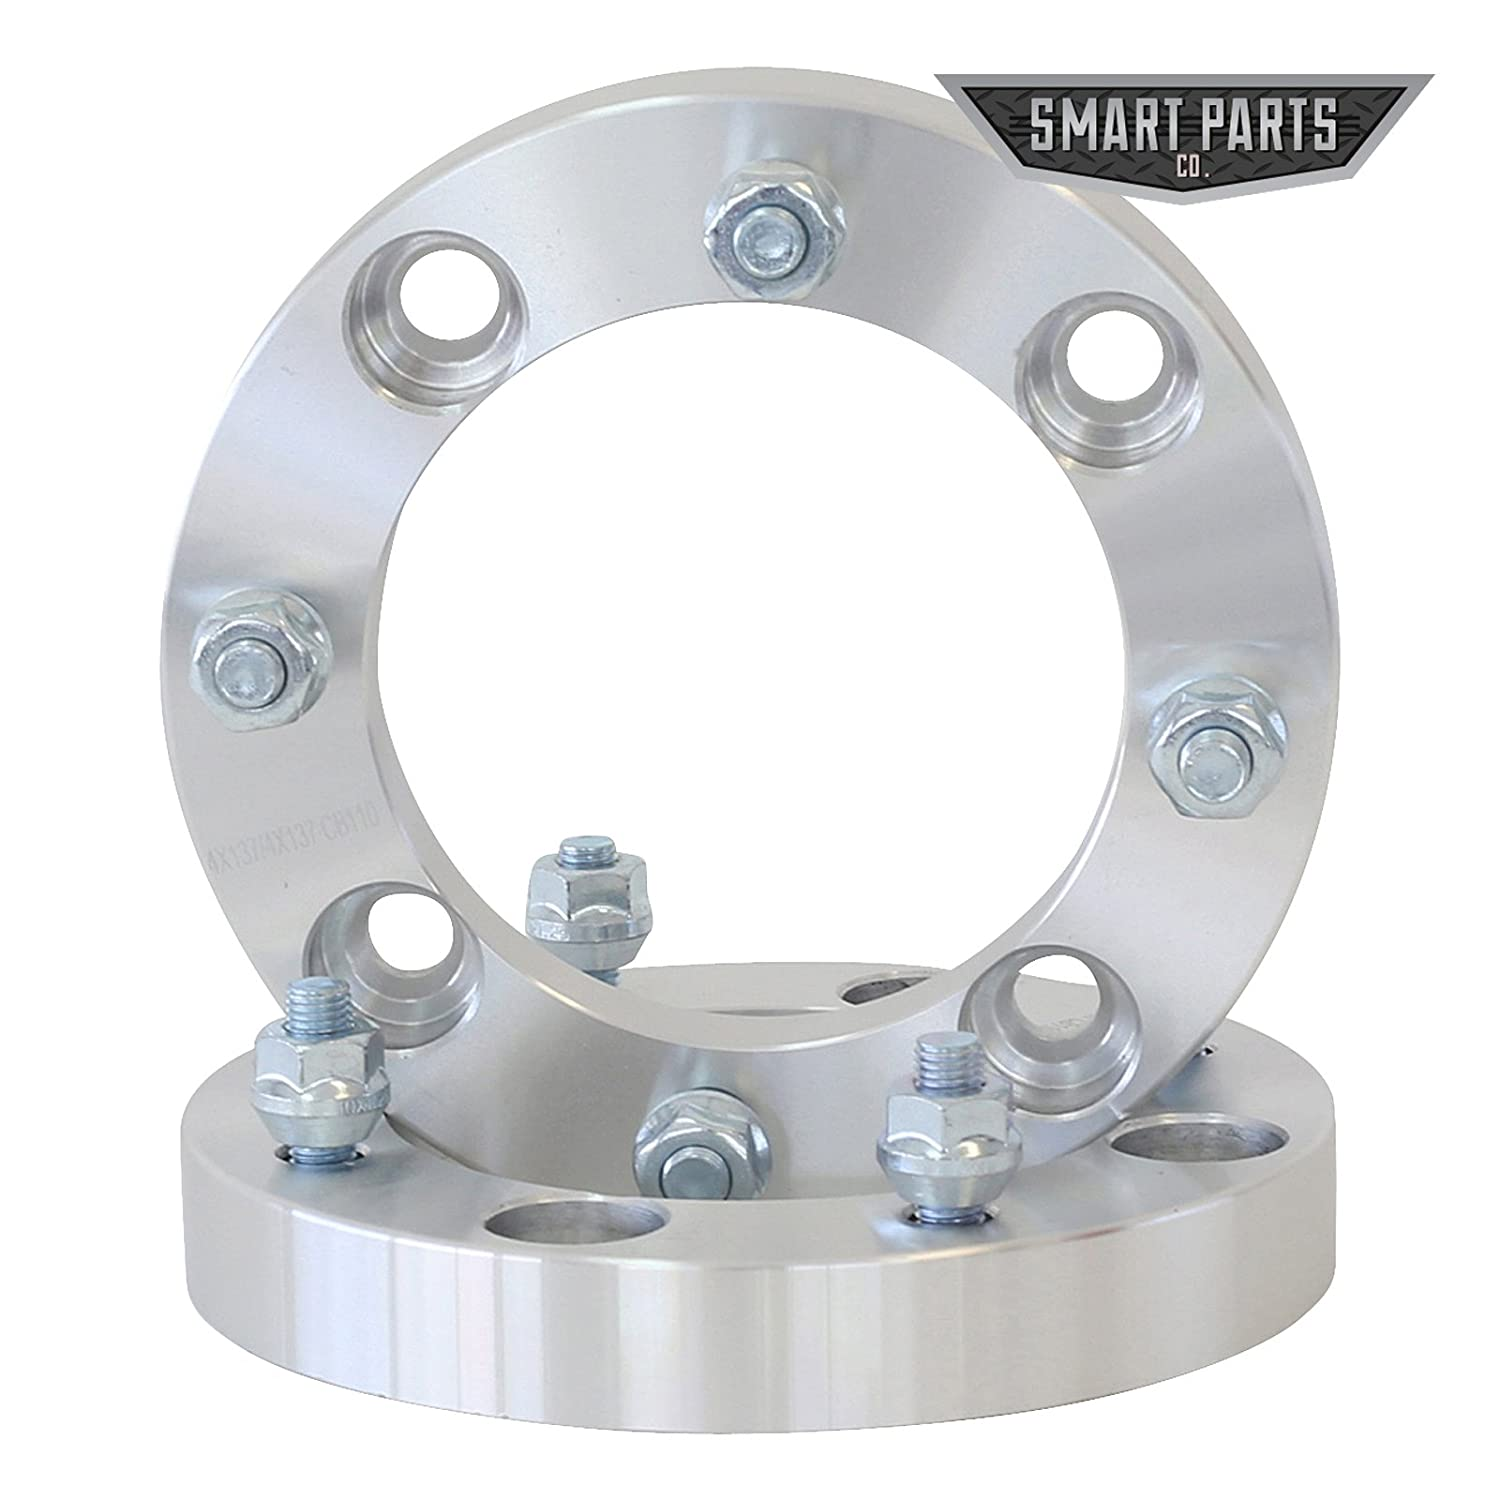 4 QTY ATV Wheel Spacers 2' (1 inch Per Side) fits all 4x137 bolt patterns - CAN-AM Bombardier Renegade Outlander Commander Kawasaki Mule Prairie Brute Force Bayou 4x137 Wheel Spacer SmartPartsCo.com 4333426528